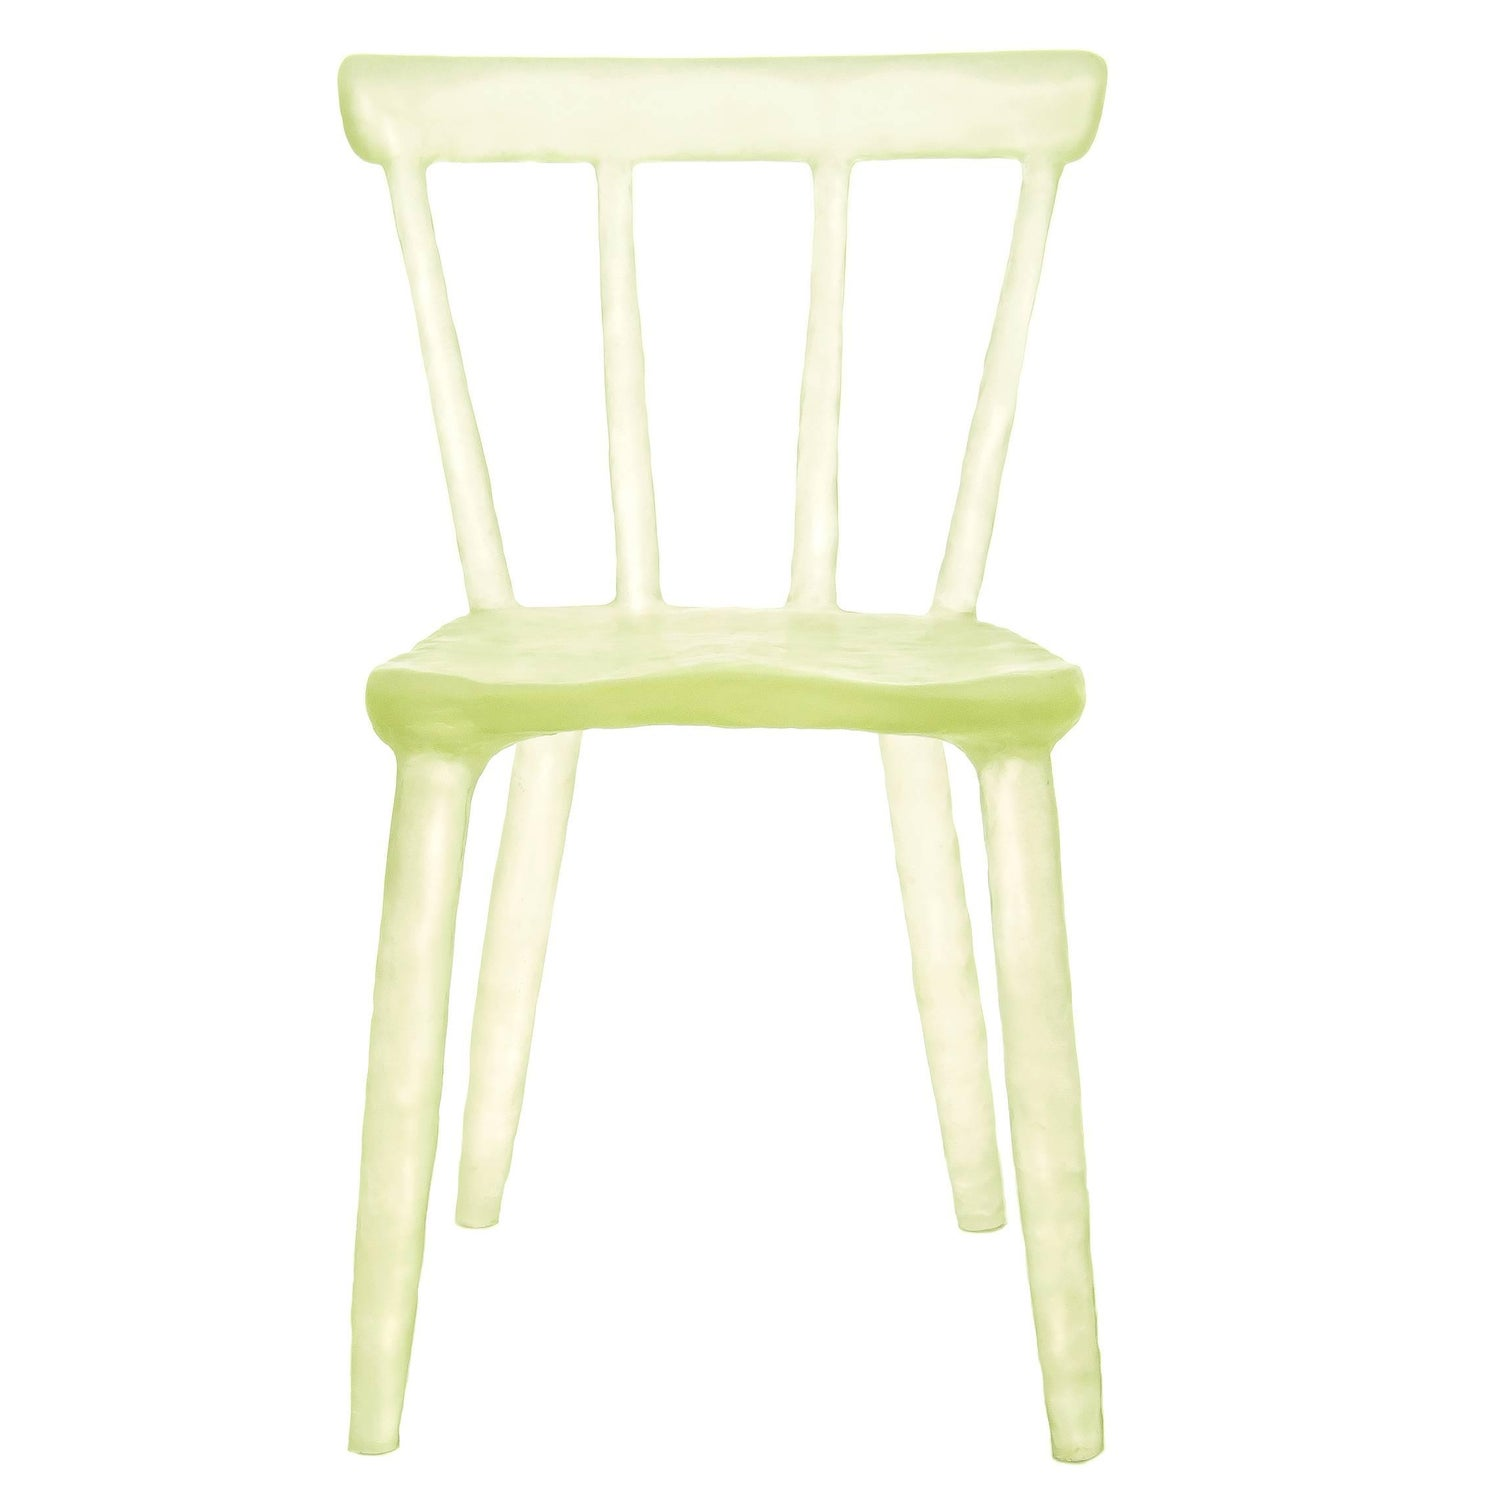 Glow Chair by Kim Markel in Yellow Handmade from Cast Recycled